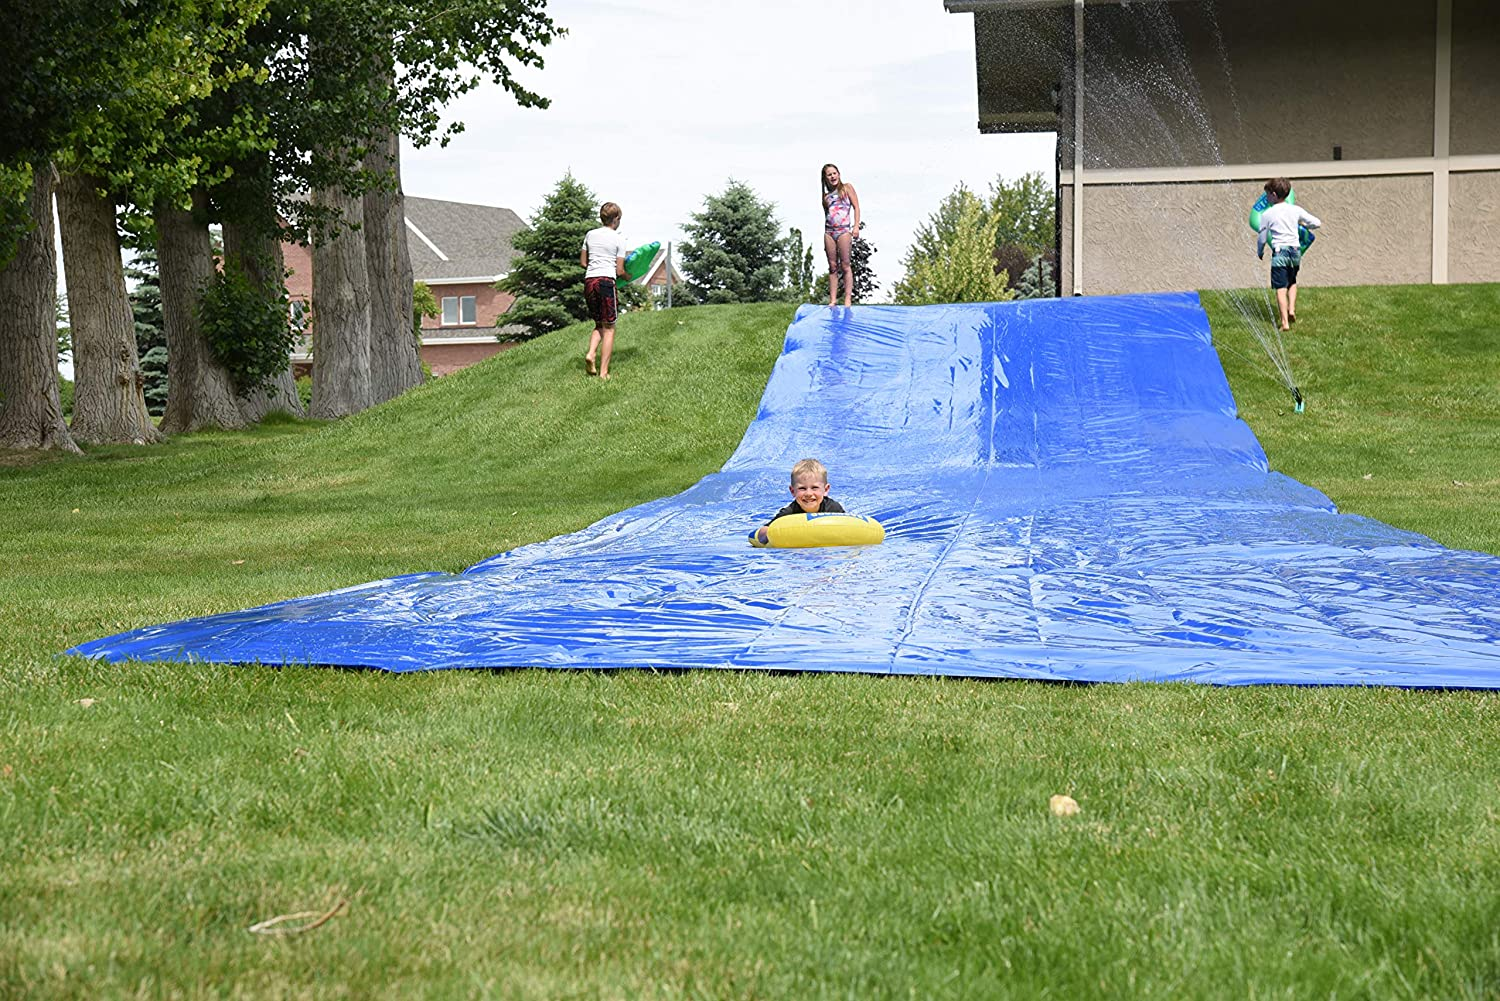 Easy to Assemble Extra Thick to Prevent Tears /& Rips BACKYARD BLAST Includes 2 Riders Carrying Bag Sprinkler 75 X 12 Heavy Duty Waterslide